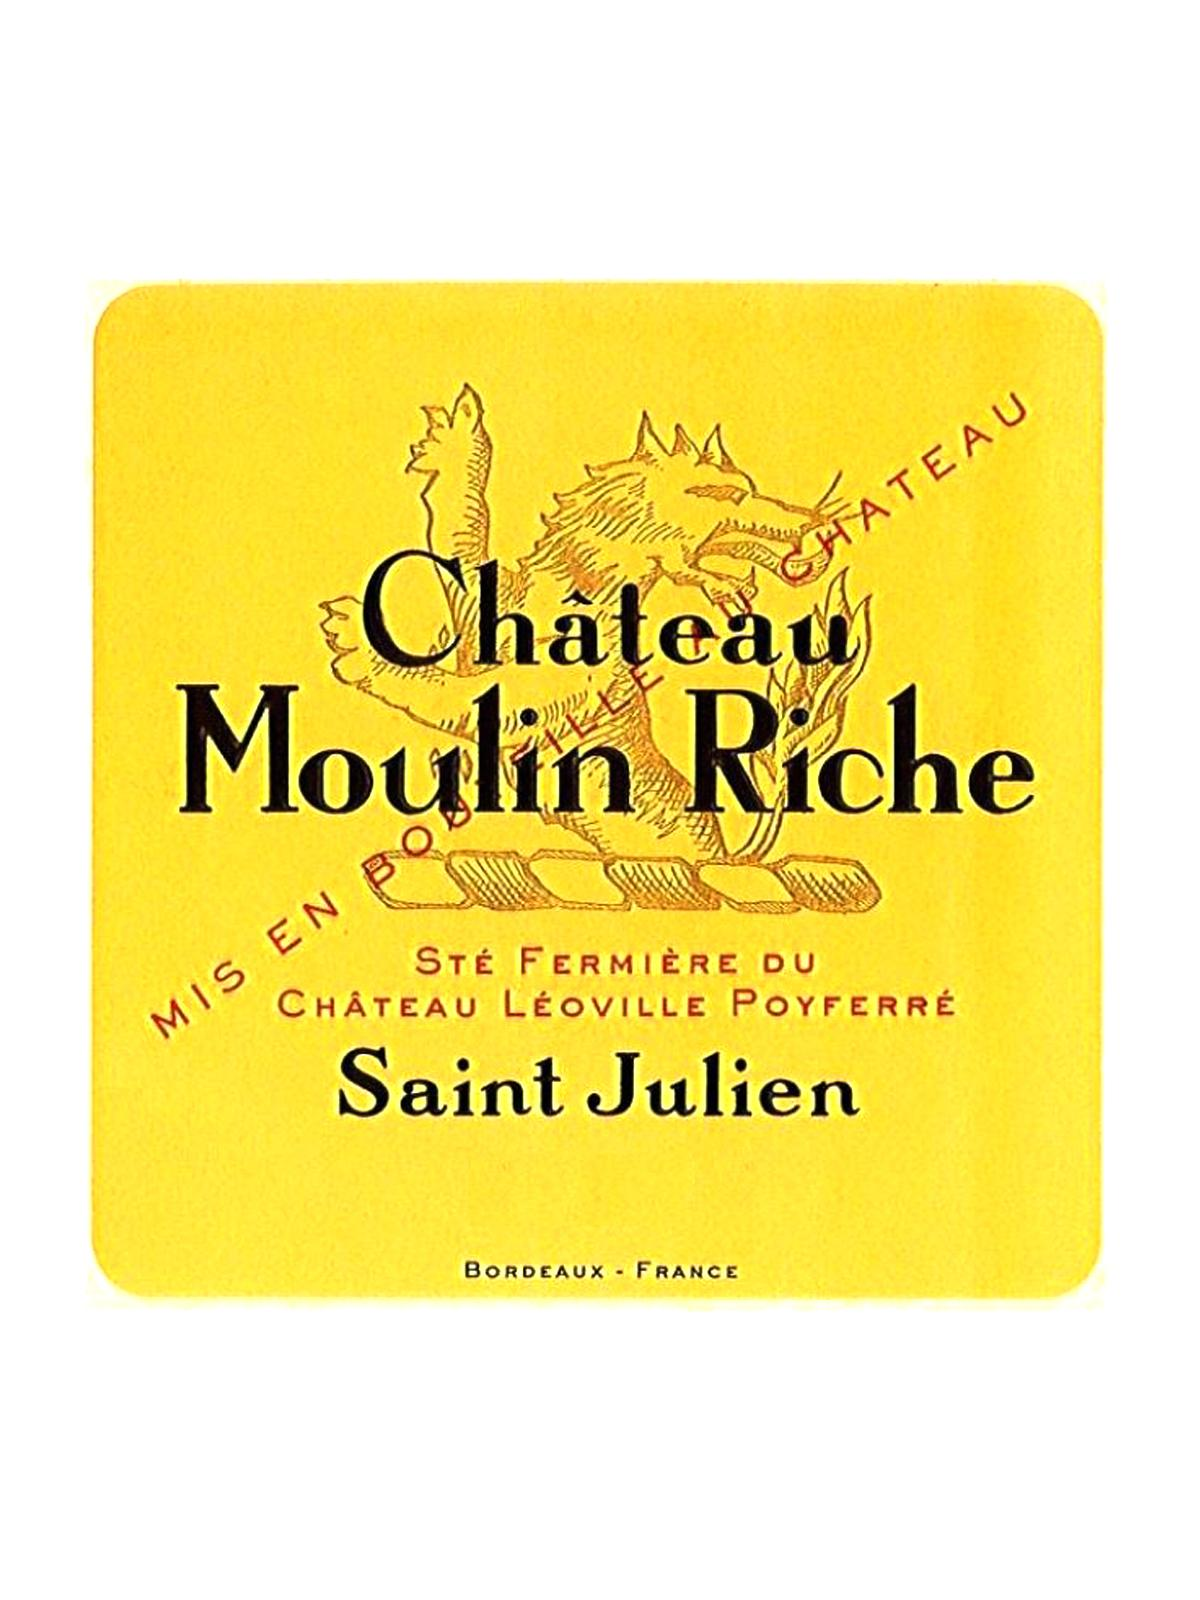 2010 Chateau Moulin Riche